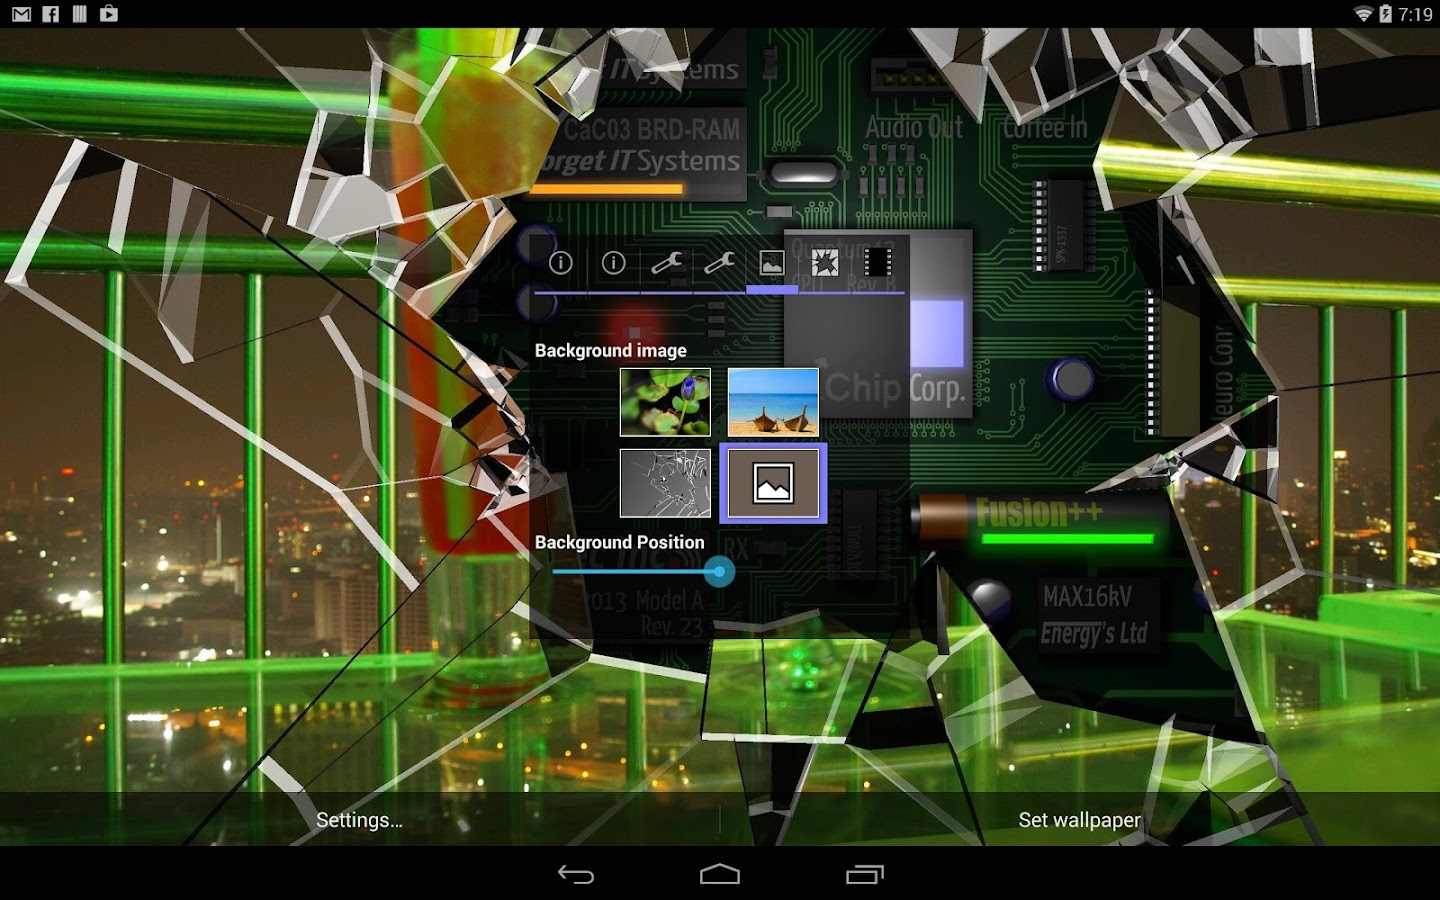 Gyroscope 3d Live Wallpaper Apk Full Cracked Screen Gyro 3d Pro Parallax Wallpaper Hd Android